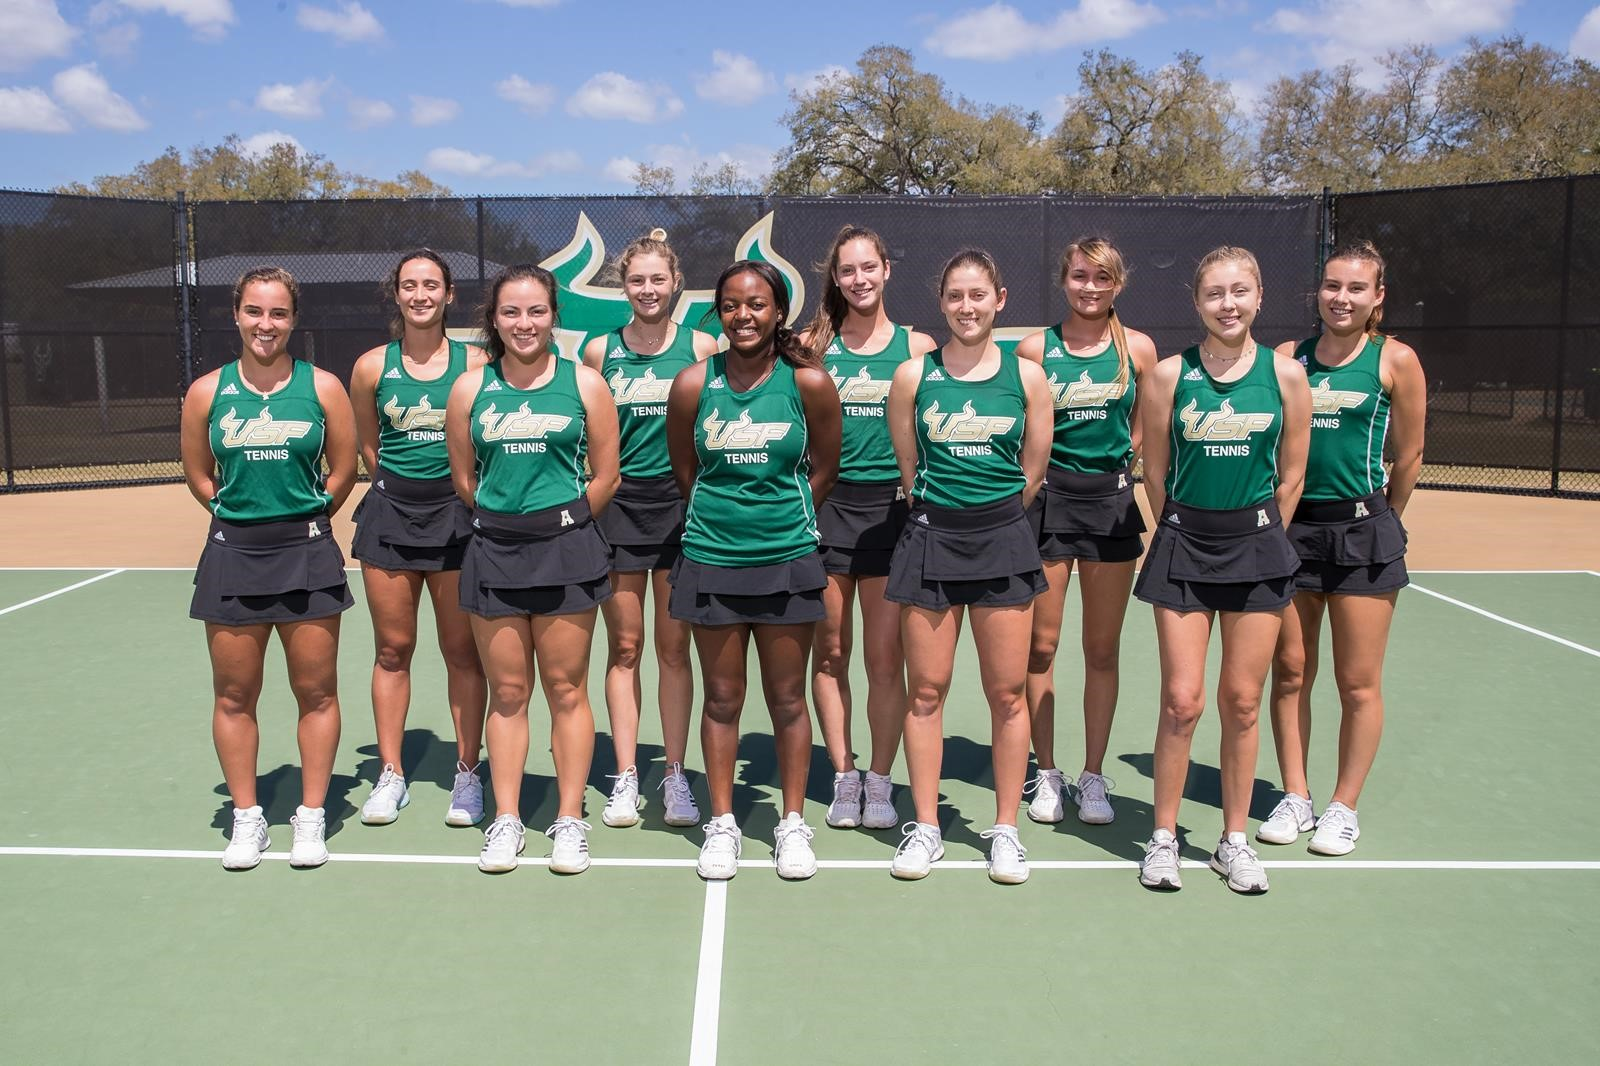 2018-19 Women's Tennis Roster - USF Athletics